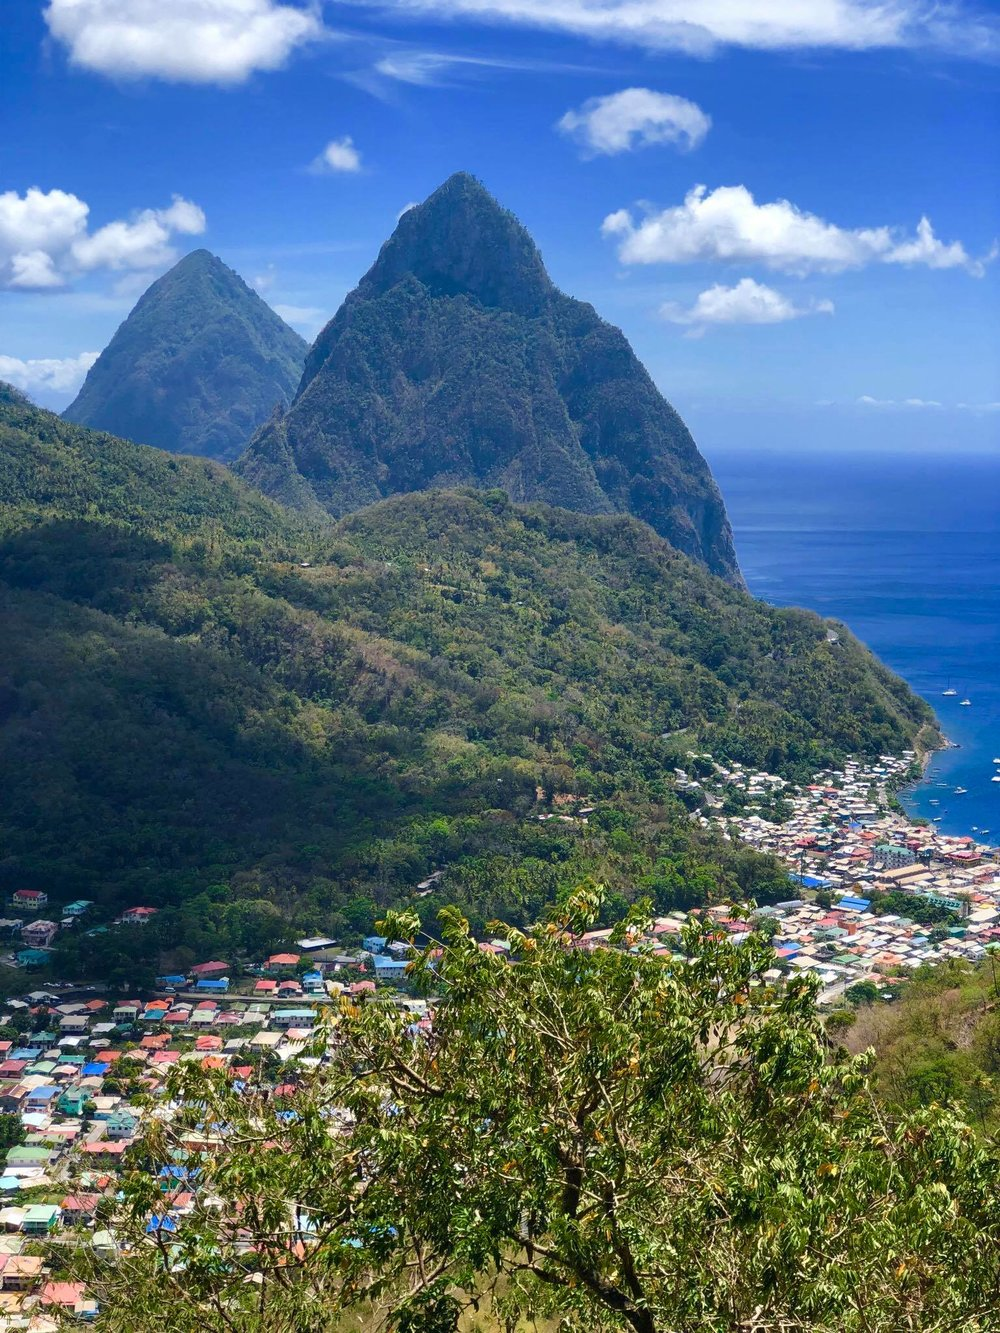 Kach Solo Travels in 2019 Beautiful St Lucia4.jpg